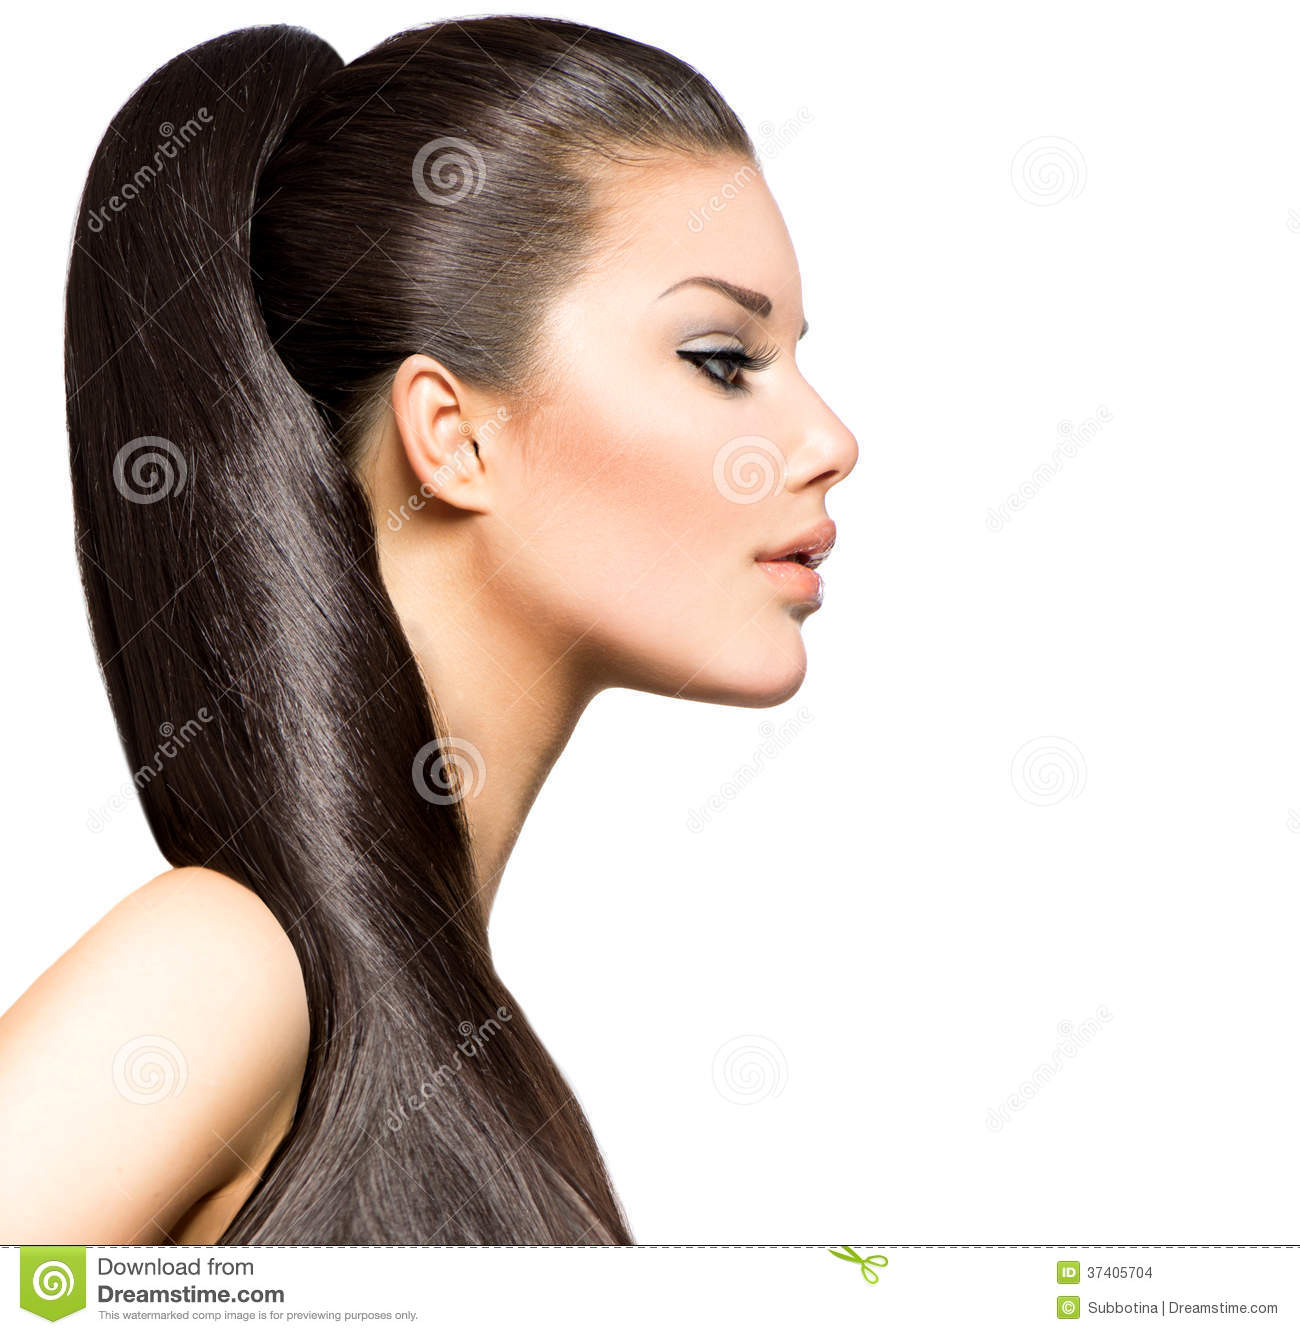 Ponytail hairstyle beauty brunette fashion model girl Long medium golden brown hairstyle with thin bangs